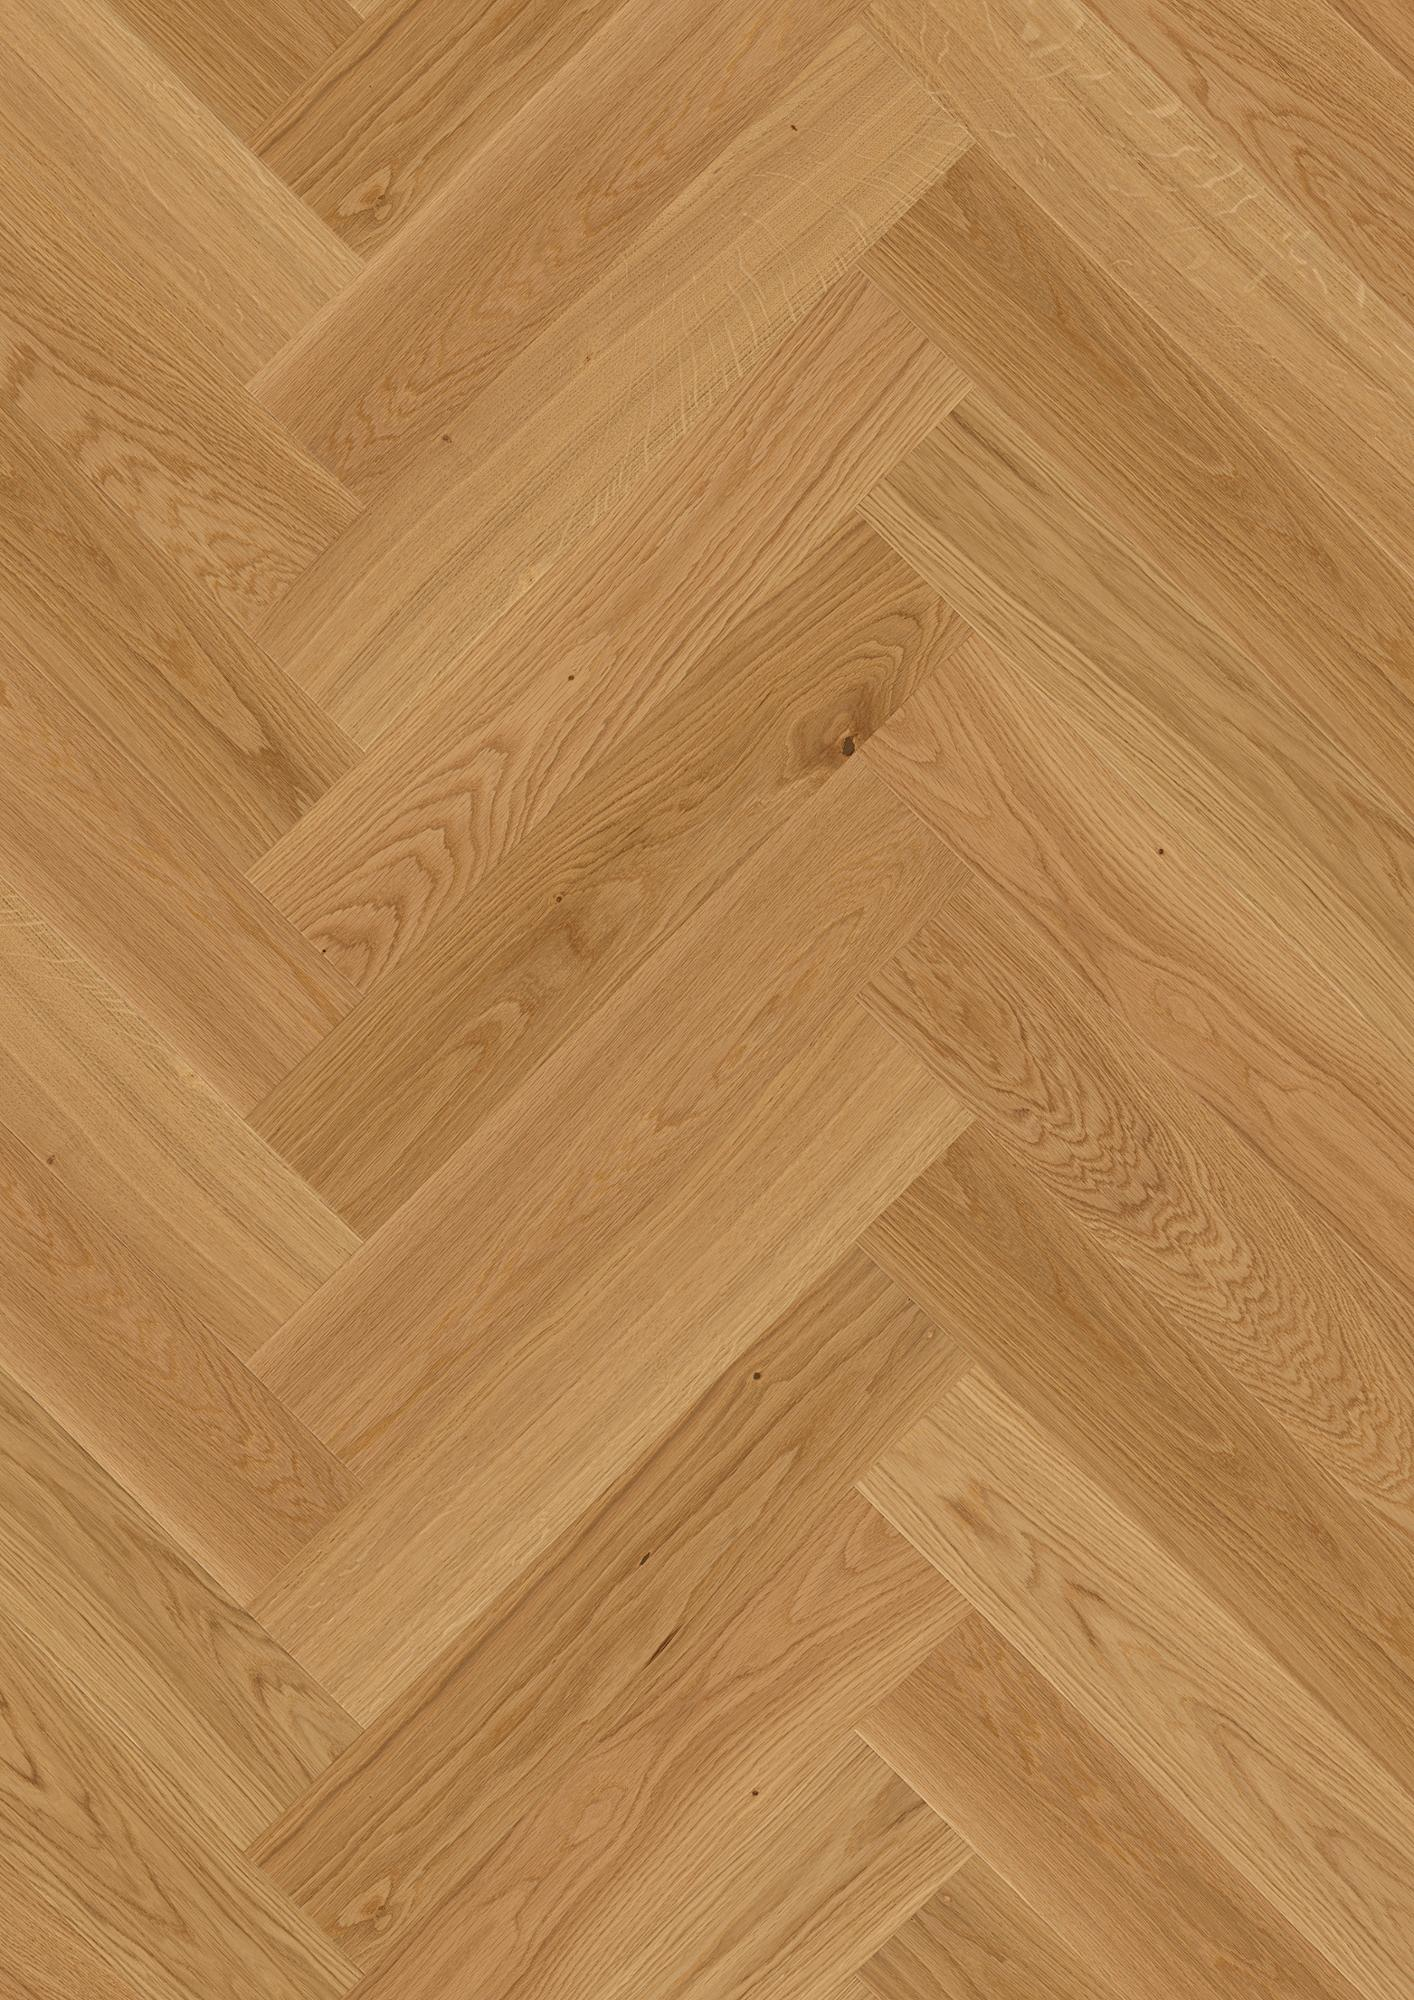 Oak Adagio, Live Natural oil, Brushed, Beveled 4V, Plank Herringbone Click, 35/64x5 7/16x27 11/64inch